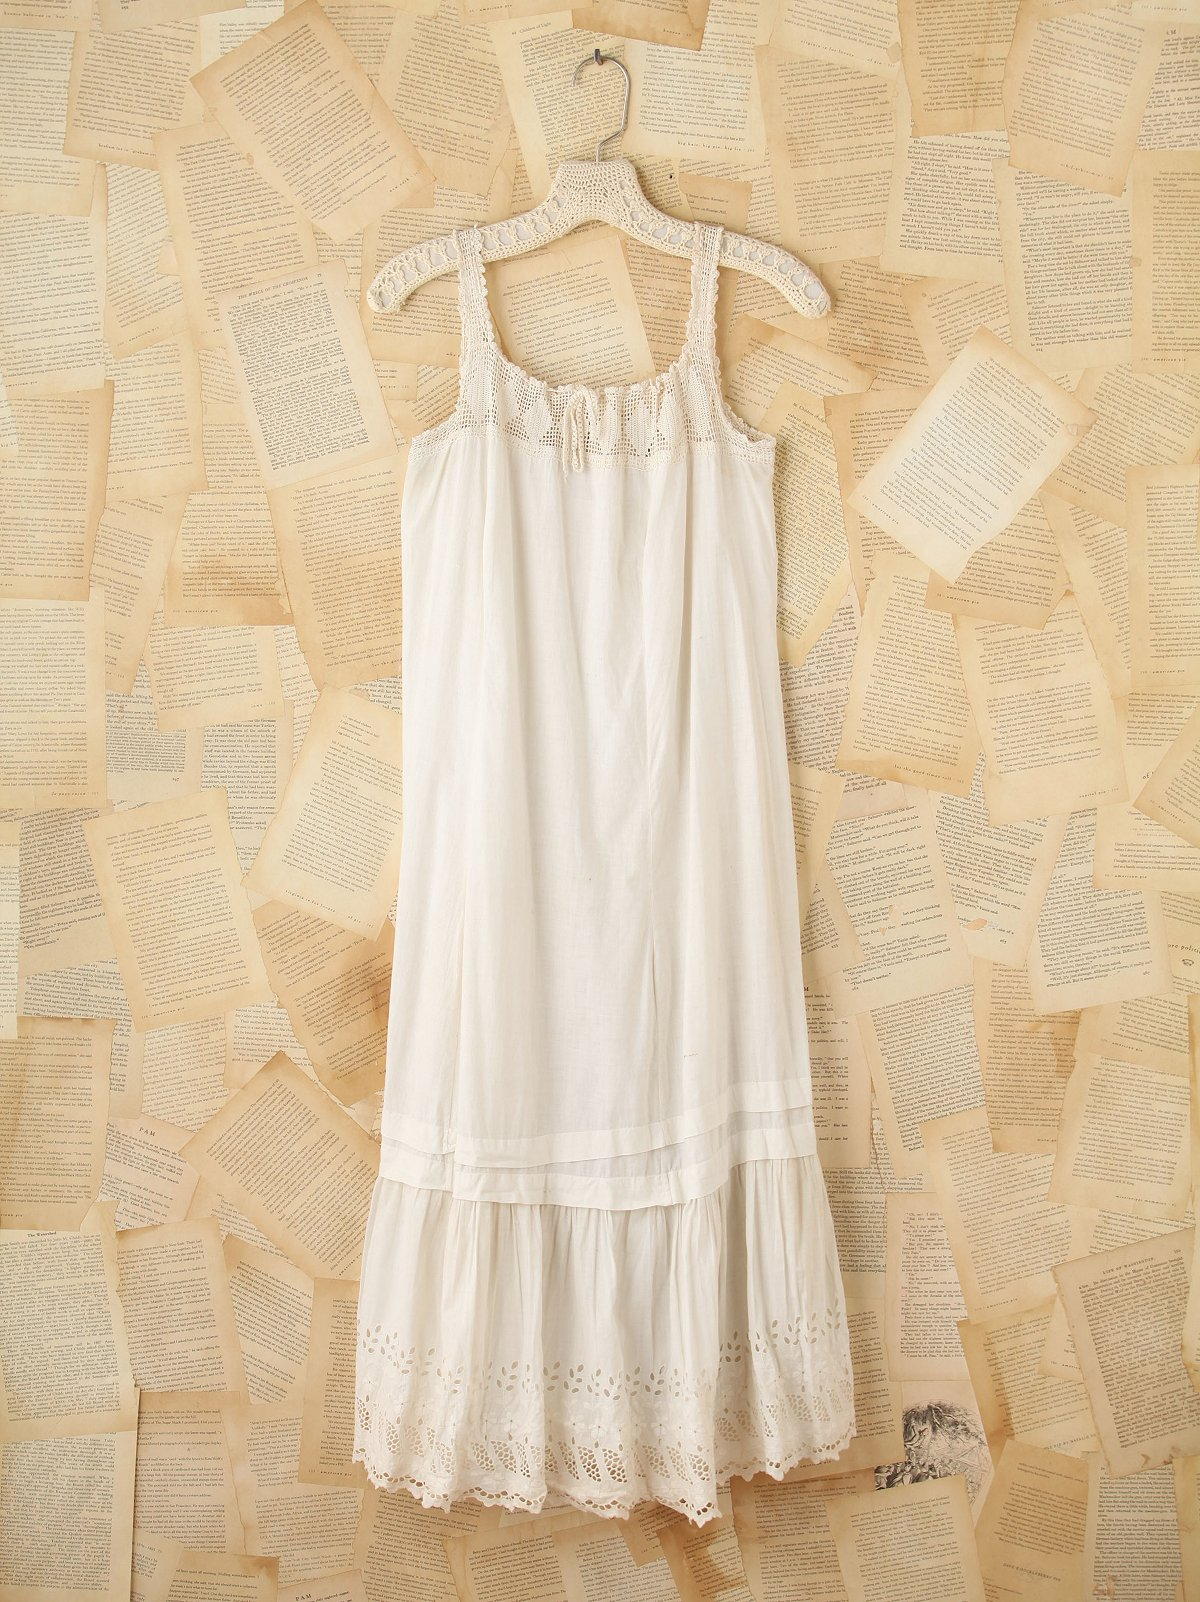 Vintage Sleeveless Shift Dress